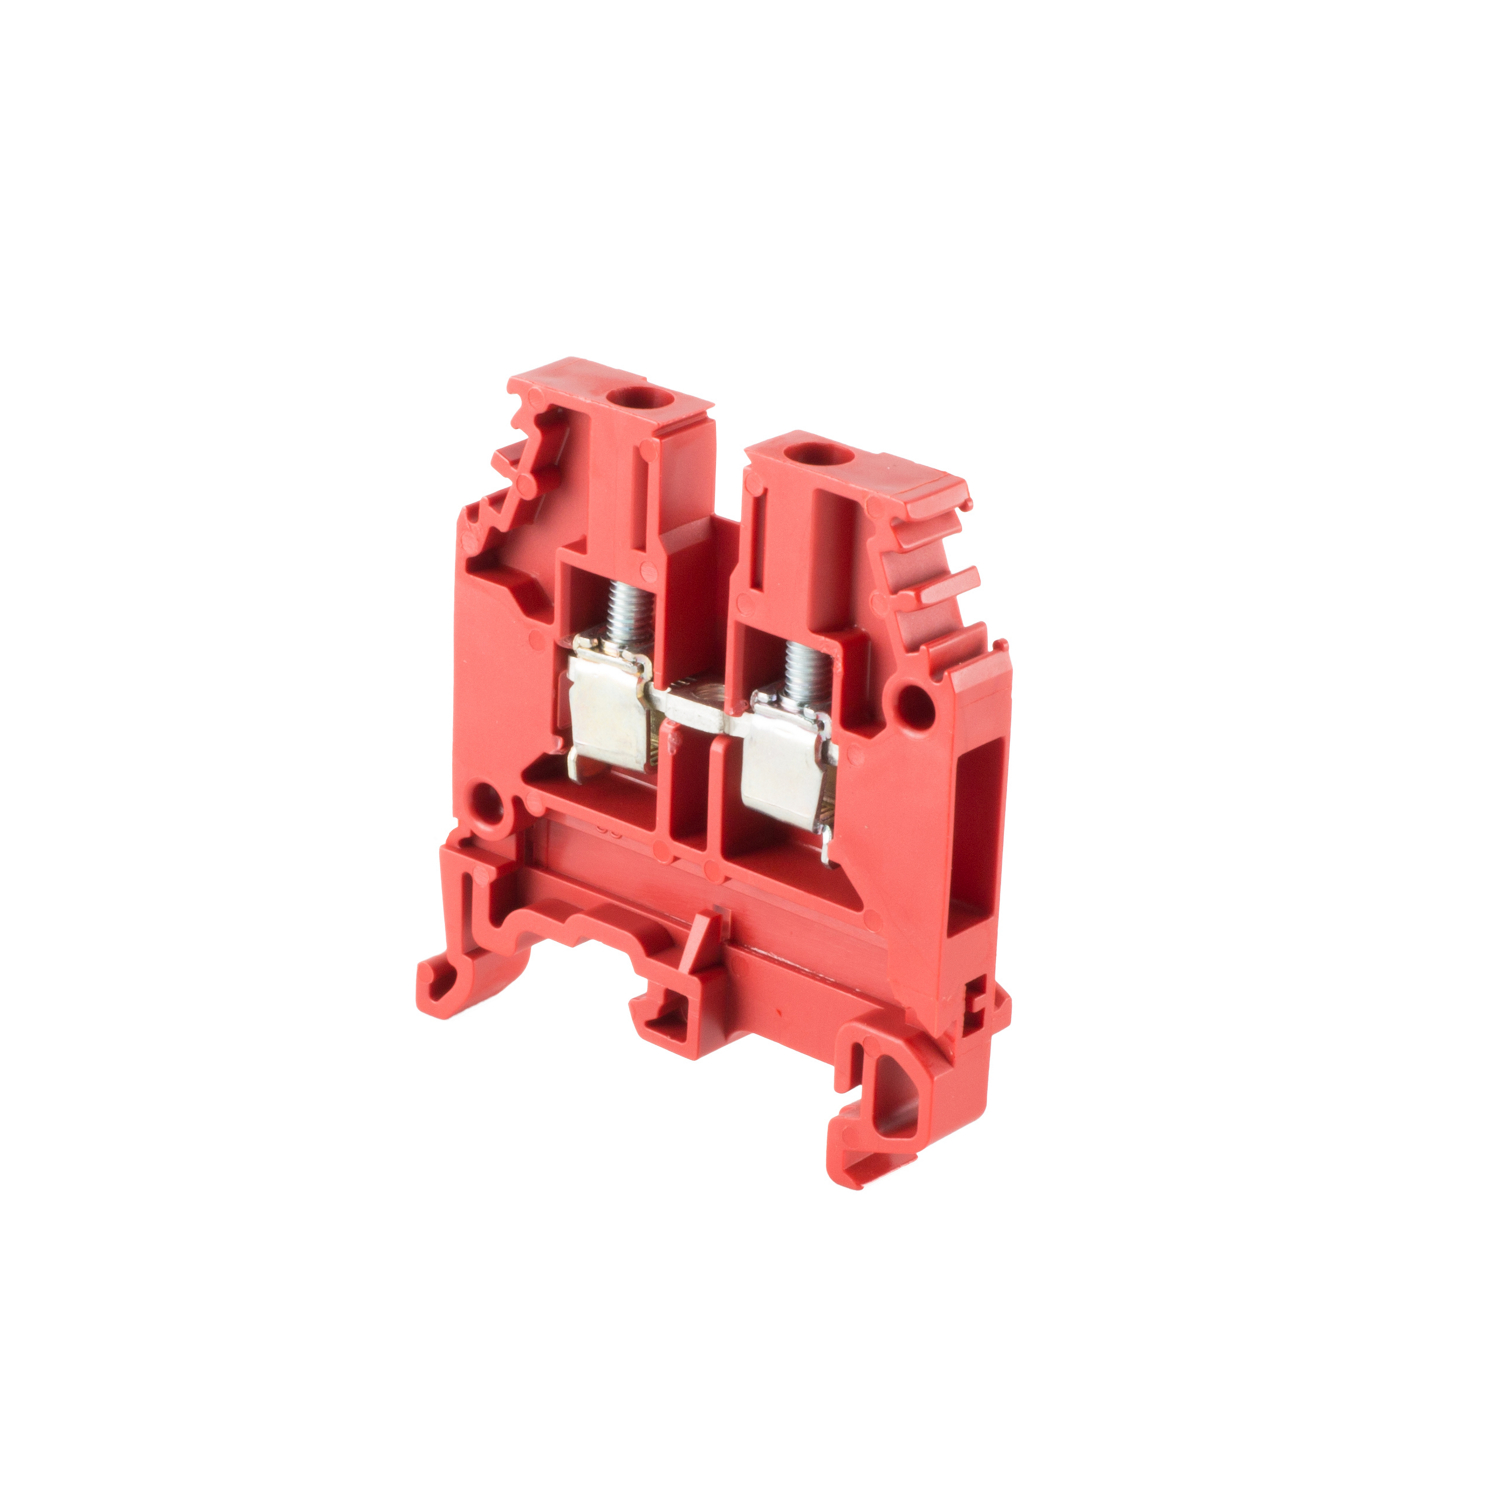 ABB 010503215 Red, feed through terminal block with 6 mm spacing, 30 Amp rated UL current with screw clamp connection that accepts 22-10 AWG UL wire range OLD PART# 1SNA105032R1500